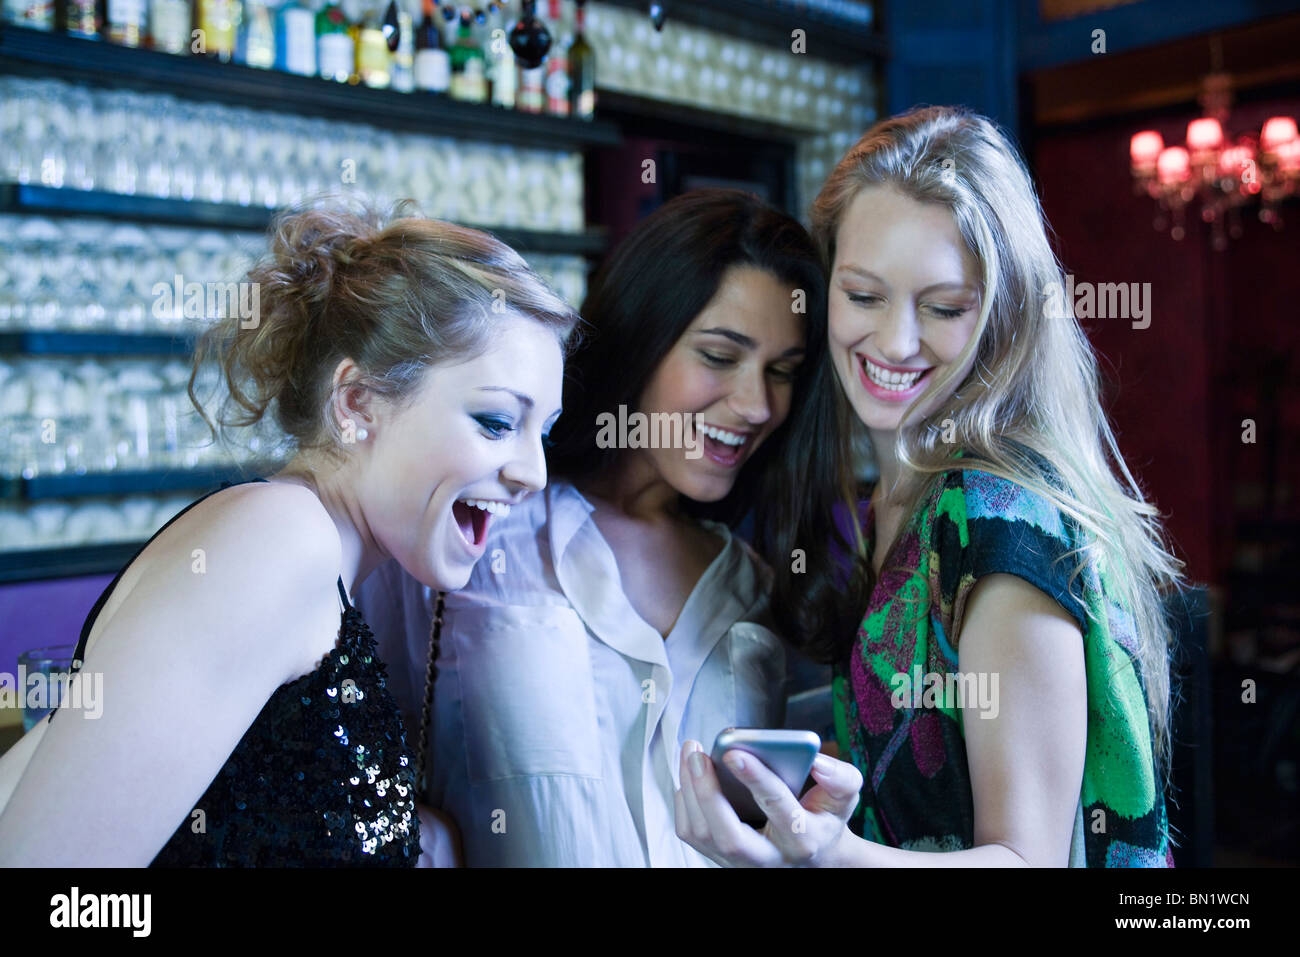 Friends together at bar, woman showing cell phone to others - Stock Image